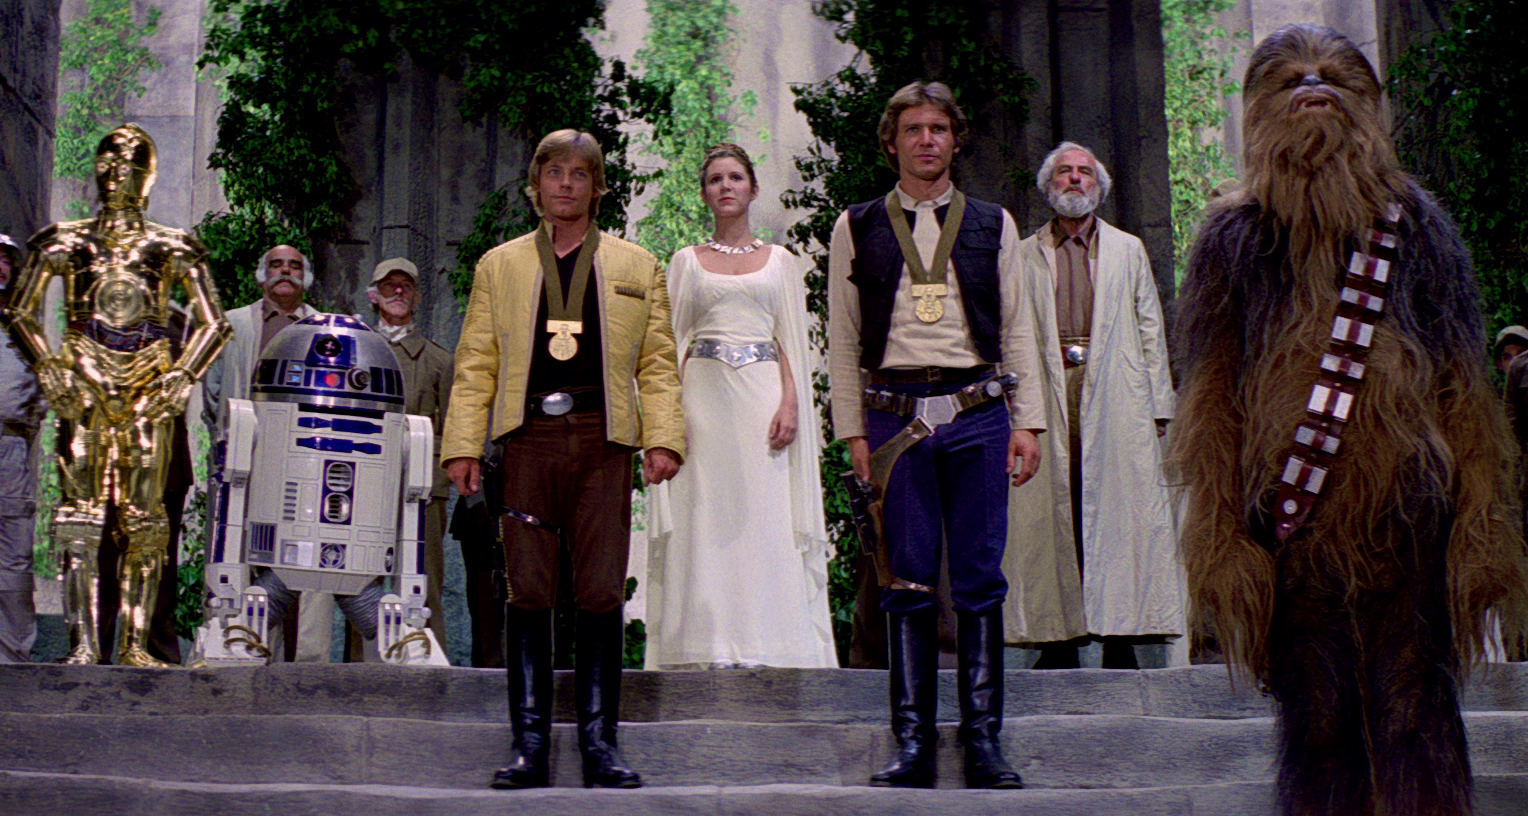 Star Wars: A New Hope medal ceremony Luke Skywalker, Han Solo, Leia Organa, Chewbacca, RD-D2, C-3PO